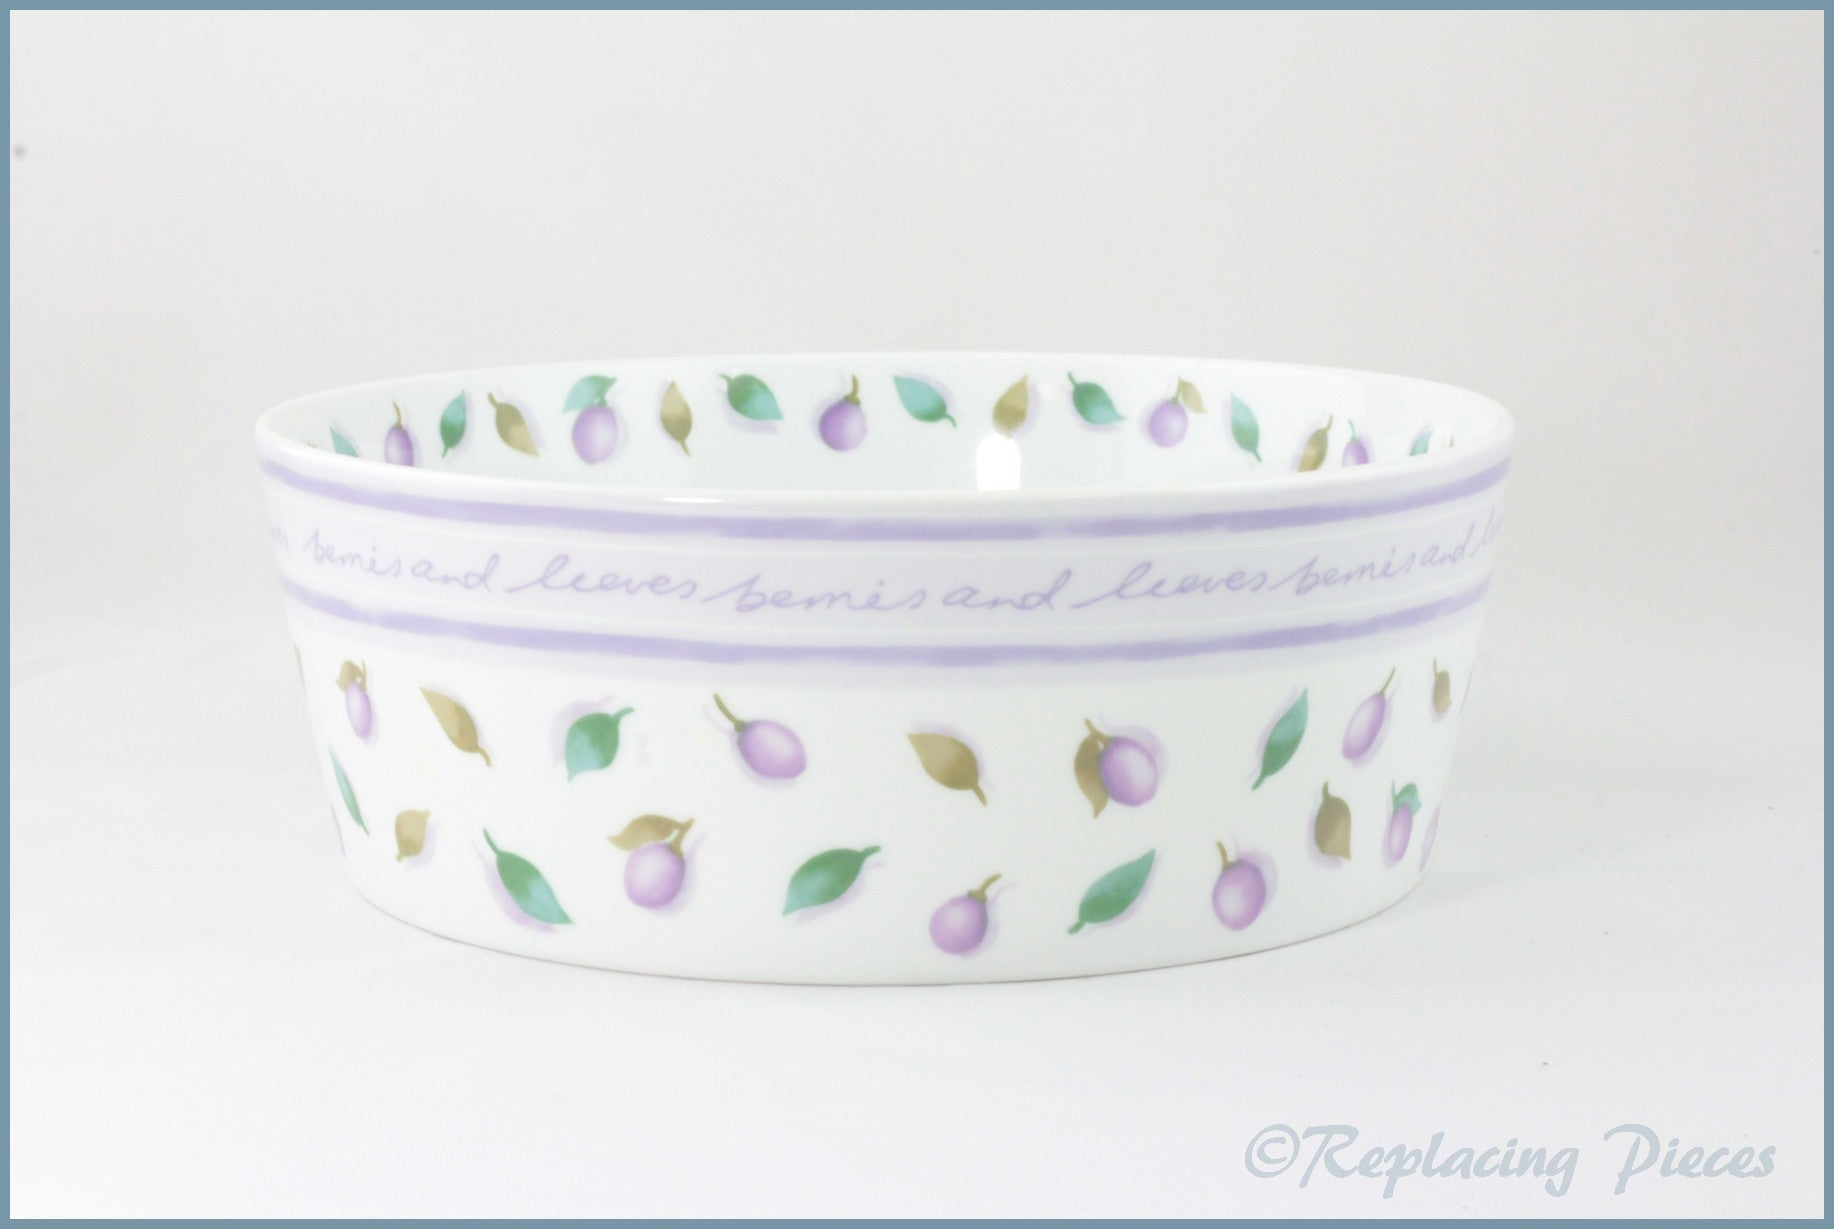 Marks & Spencer - Berries And Leaves - Serving Bowl